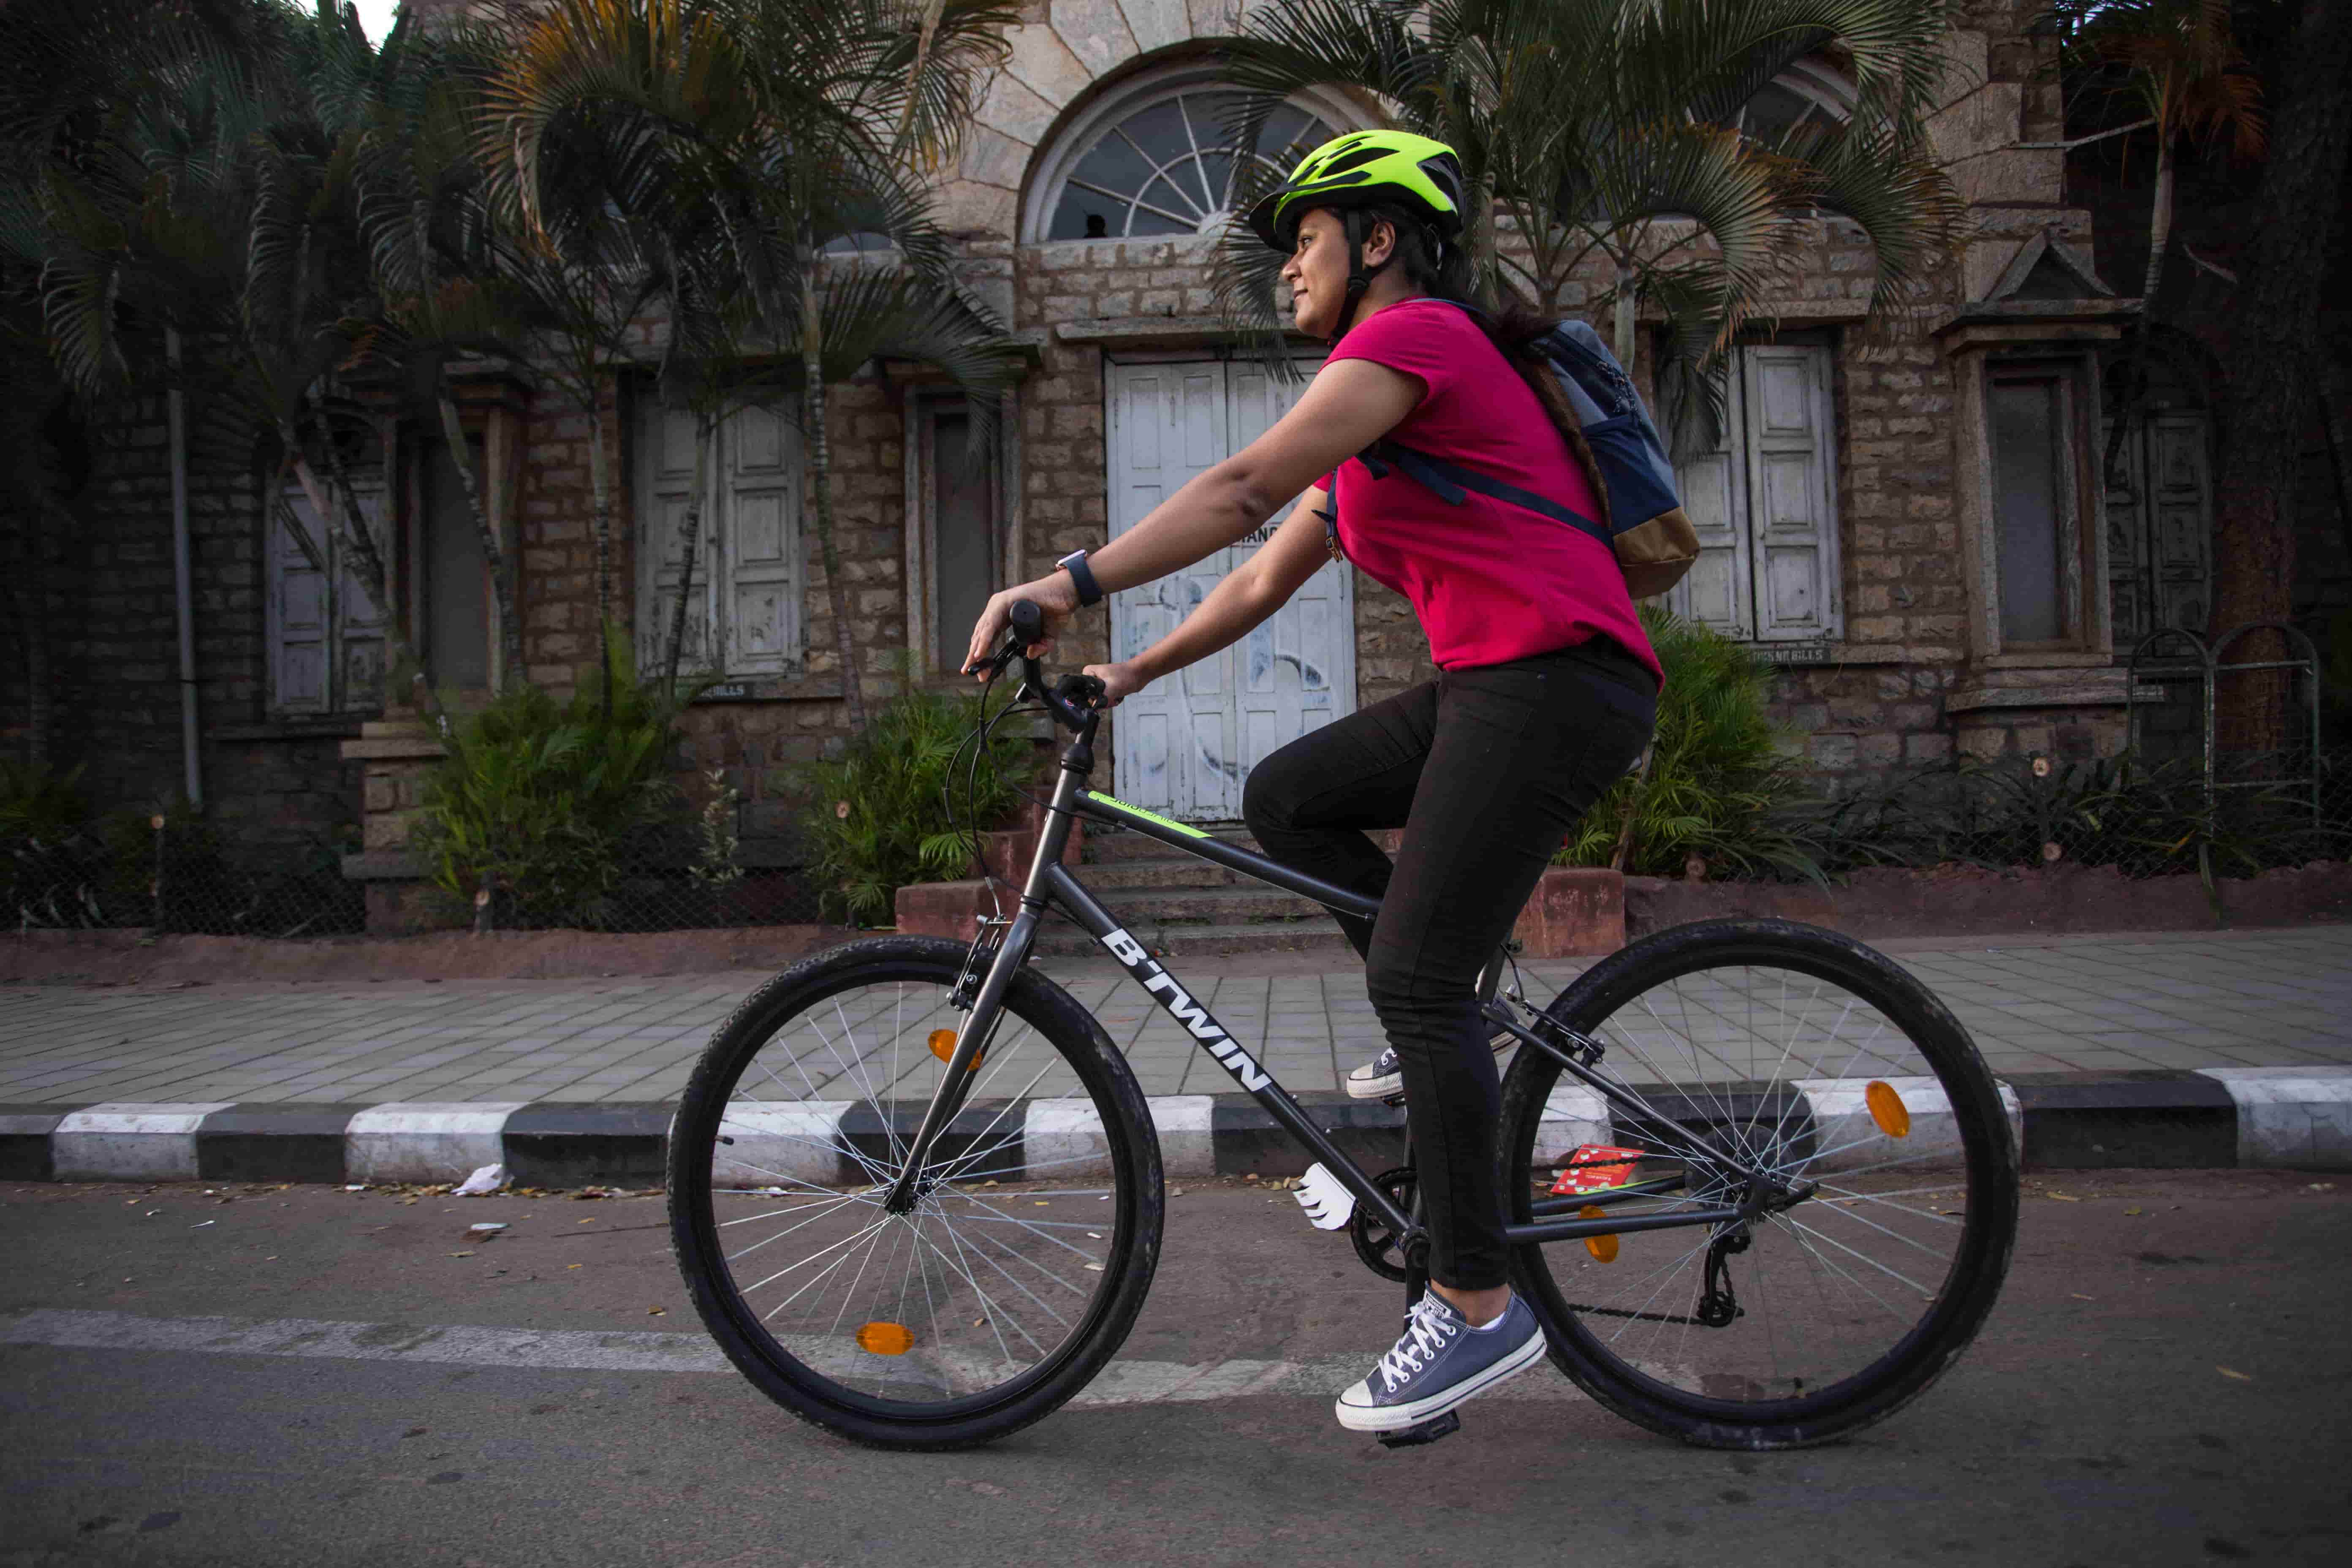 8 benefits of cycling for women